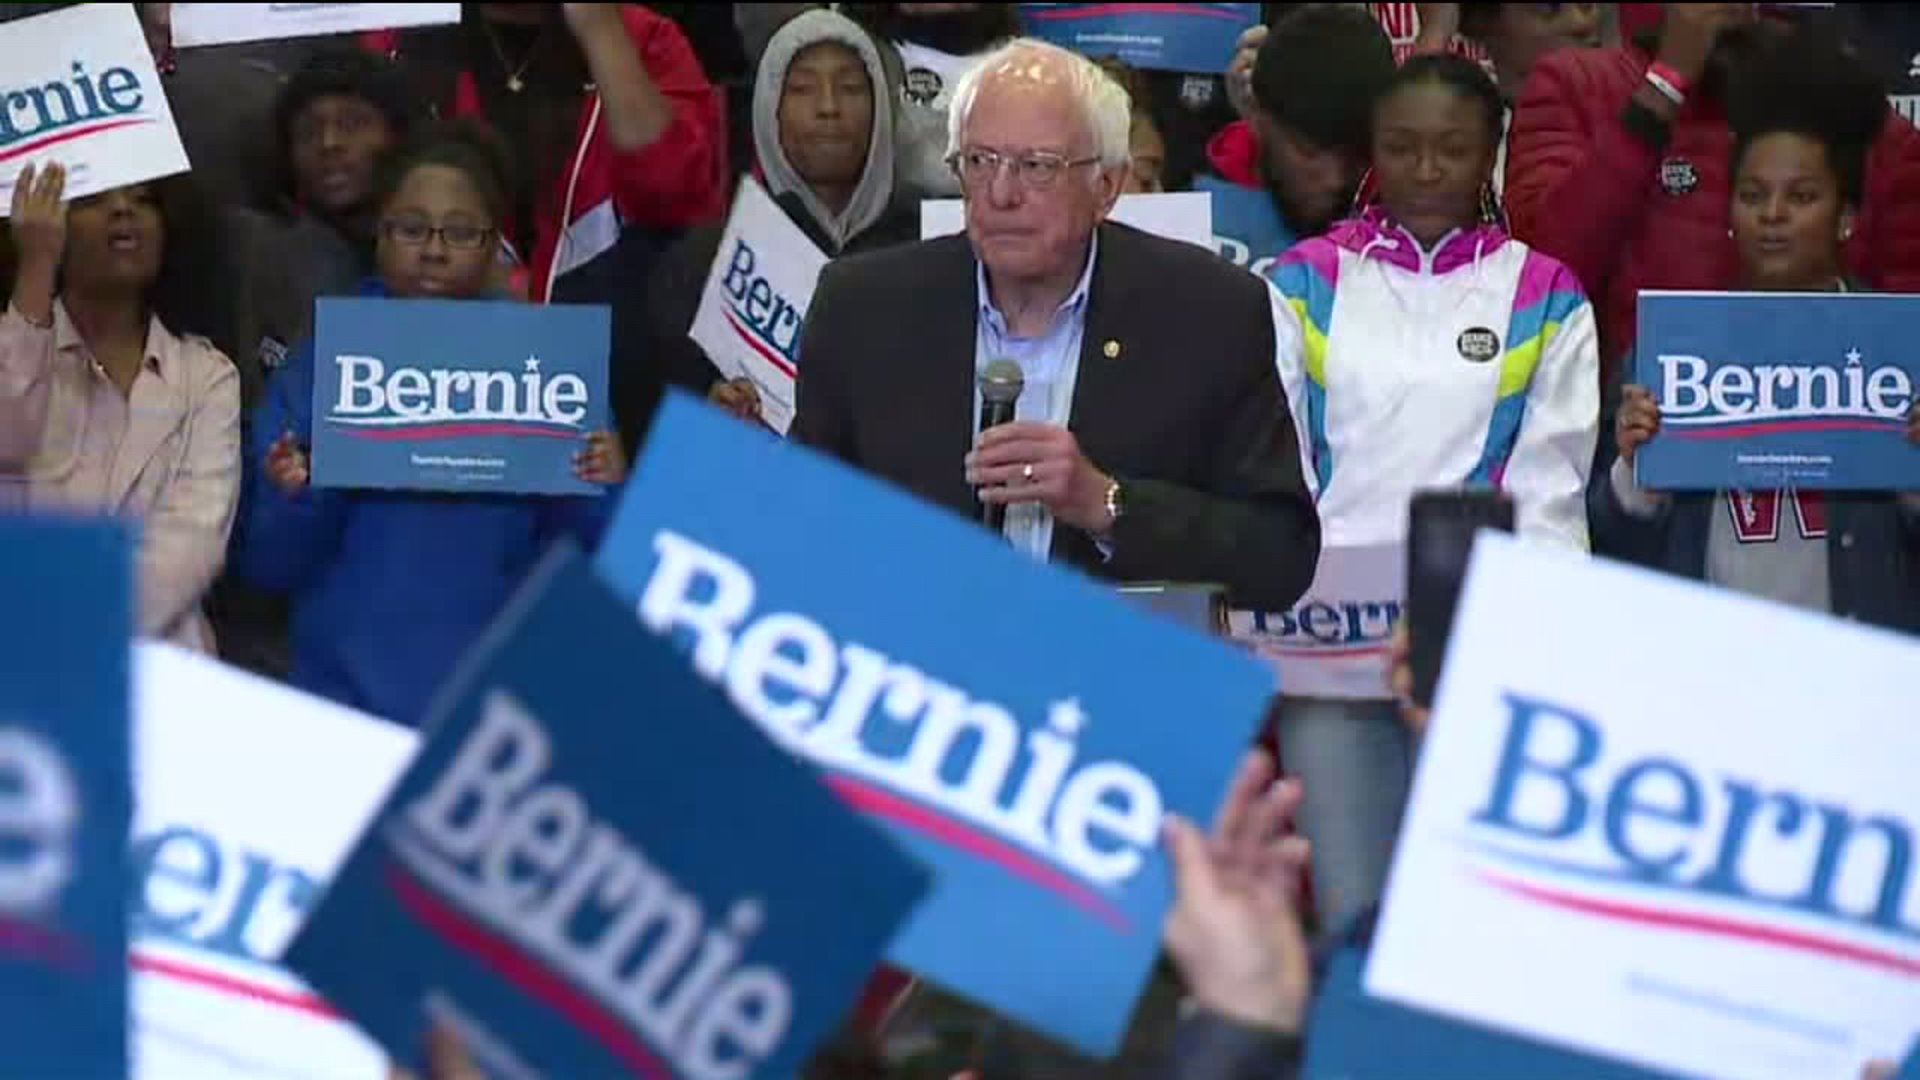 Bernie Sanders appears in Winston-Salem on Feb. 27, 2020. (WGHP)